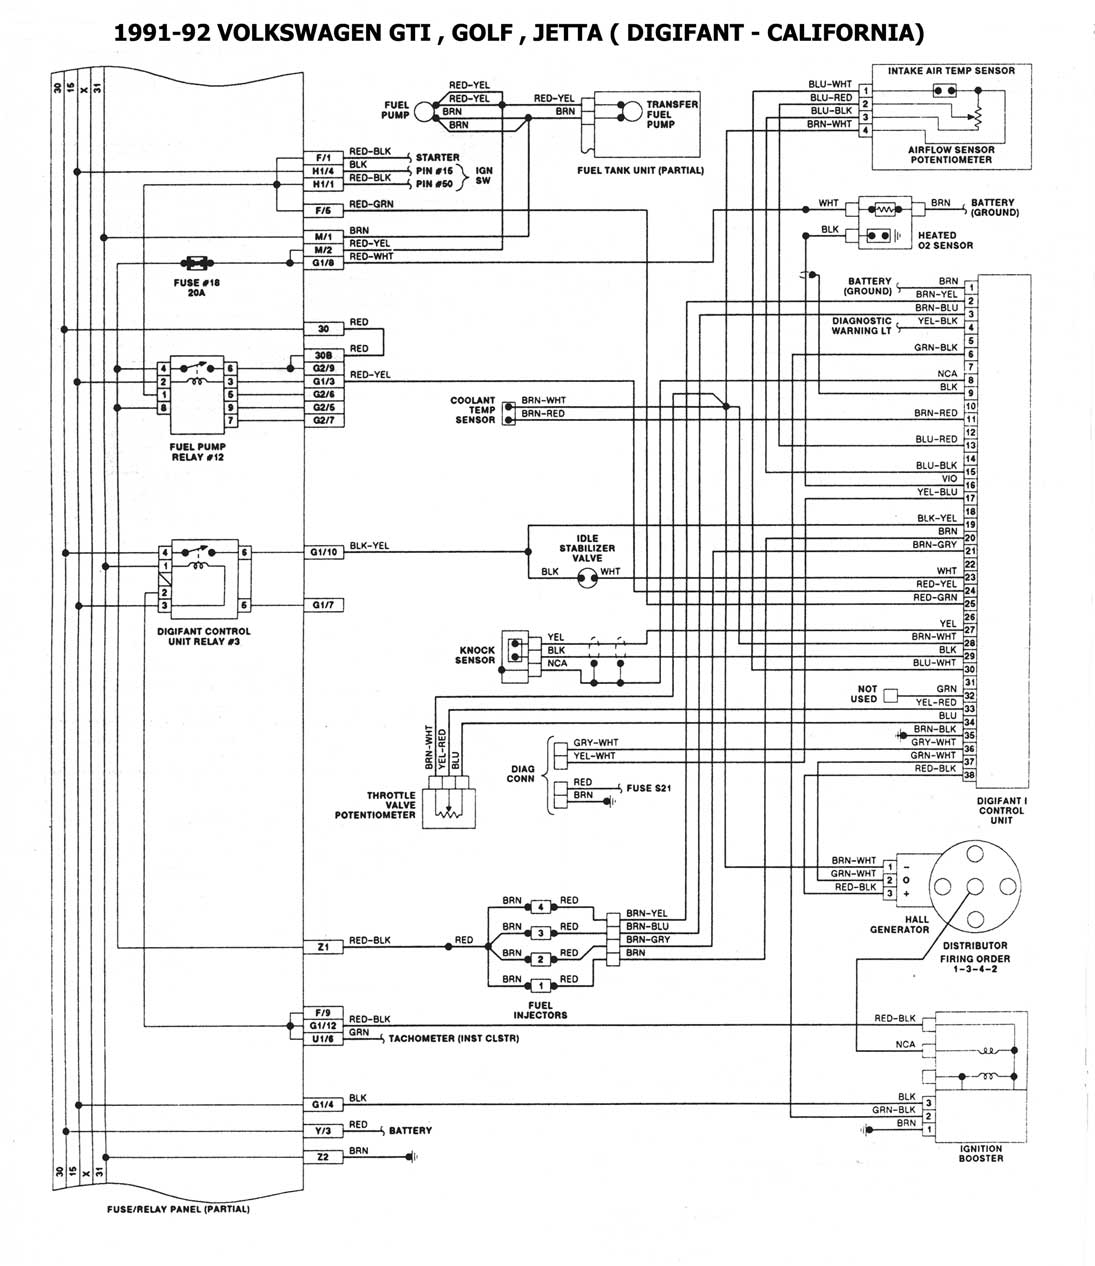 2012 Scion Xb Wiring Diagram on 2000 Volkswagen Golf Engine Diagram